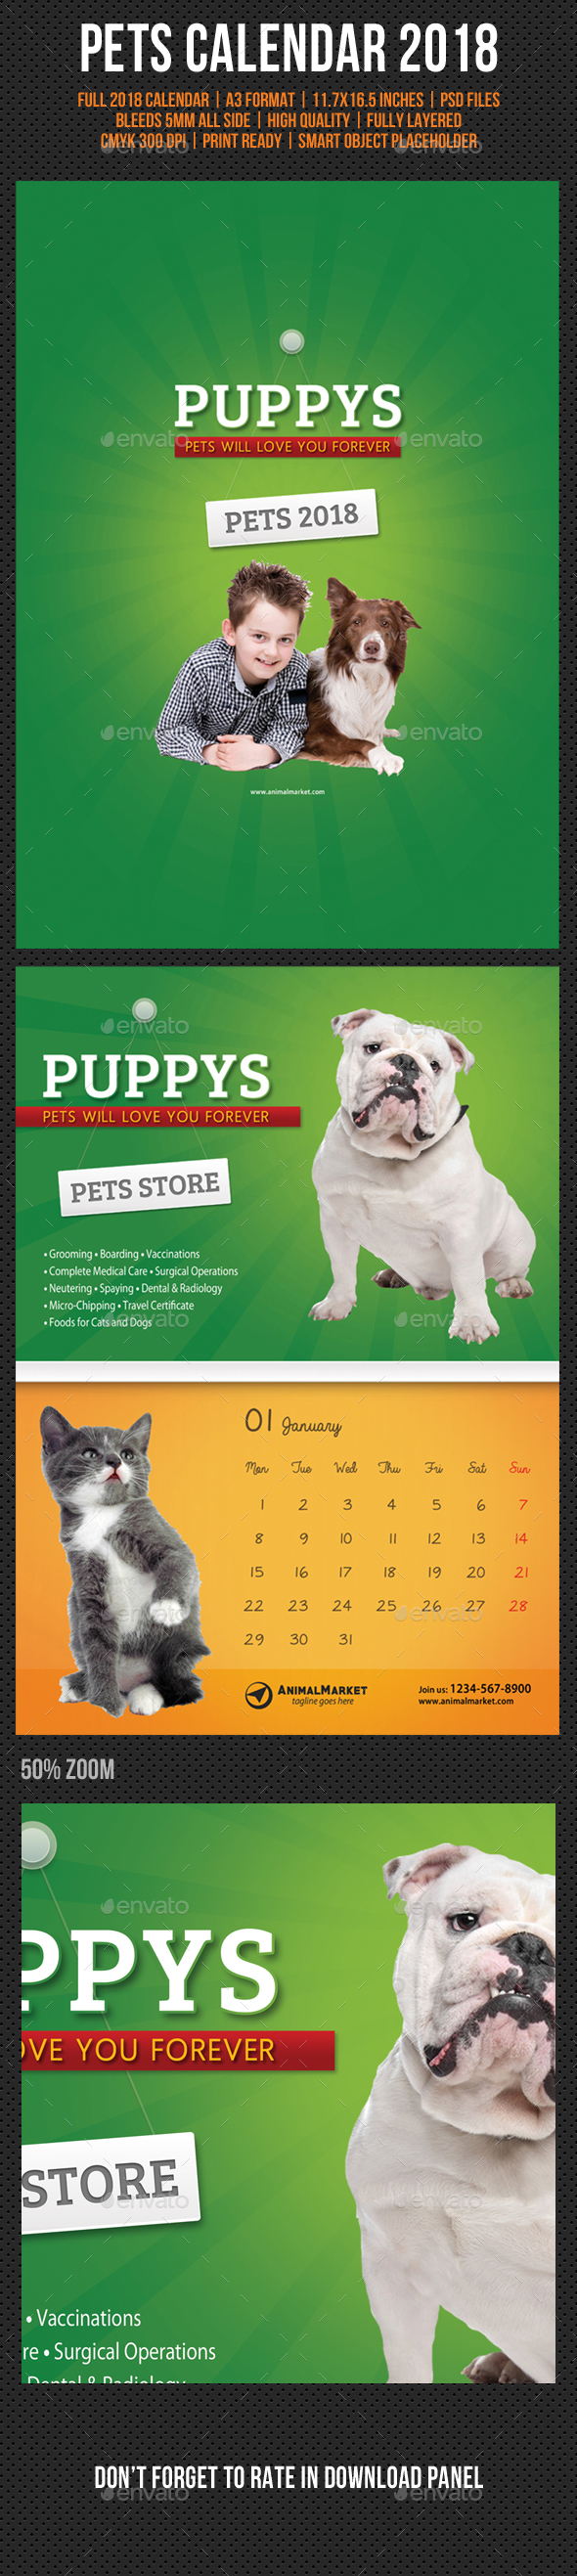 Pet Shop Wall Calendar 2018 - Calendars Stationery